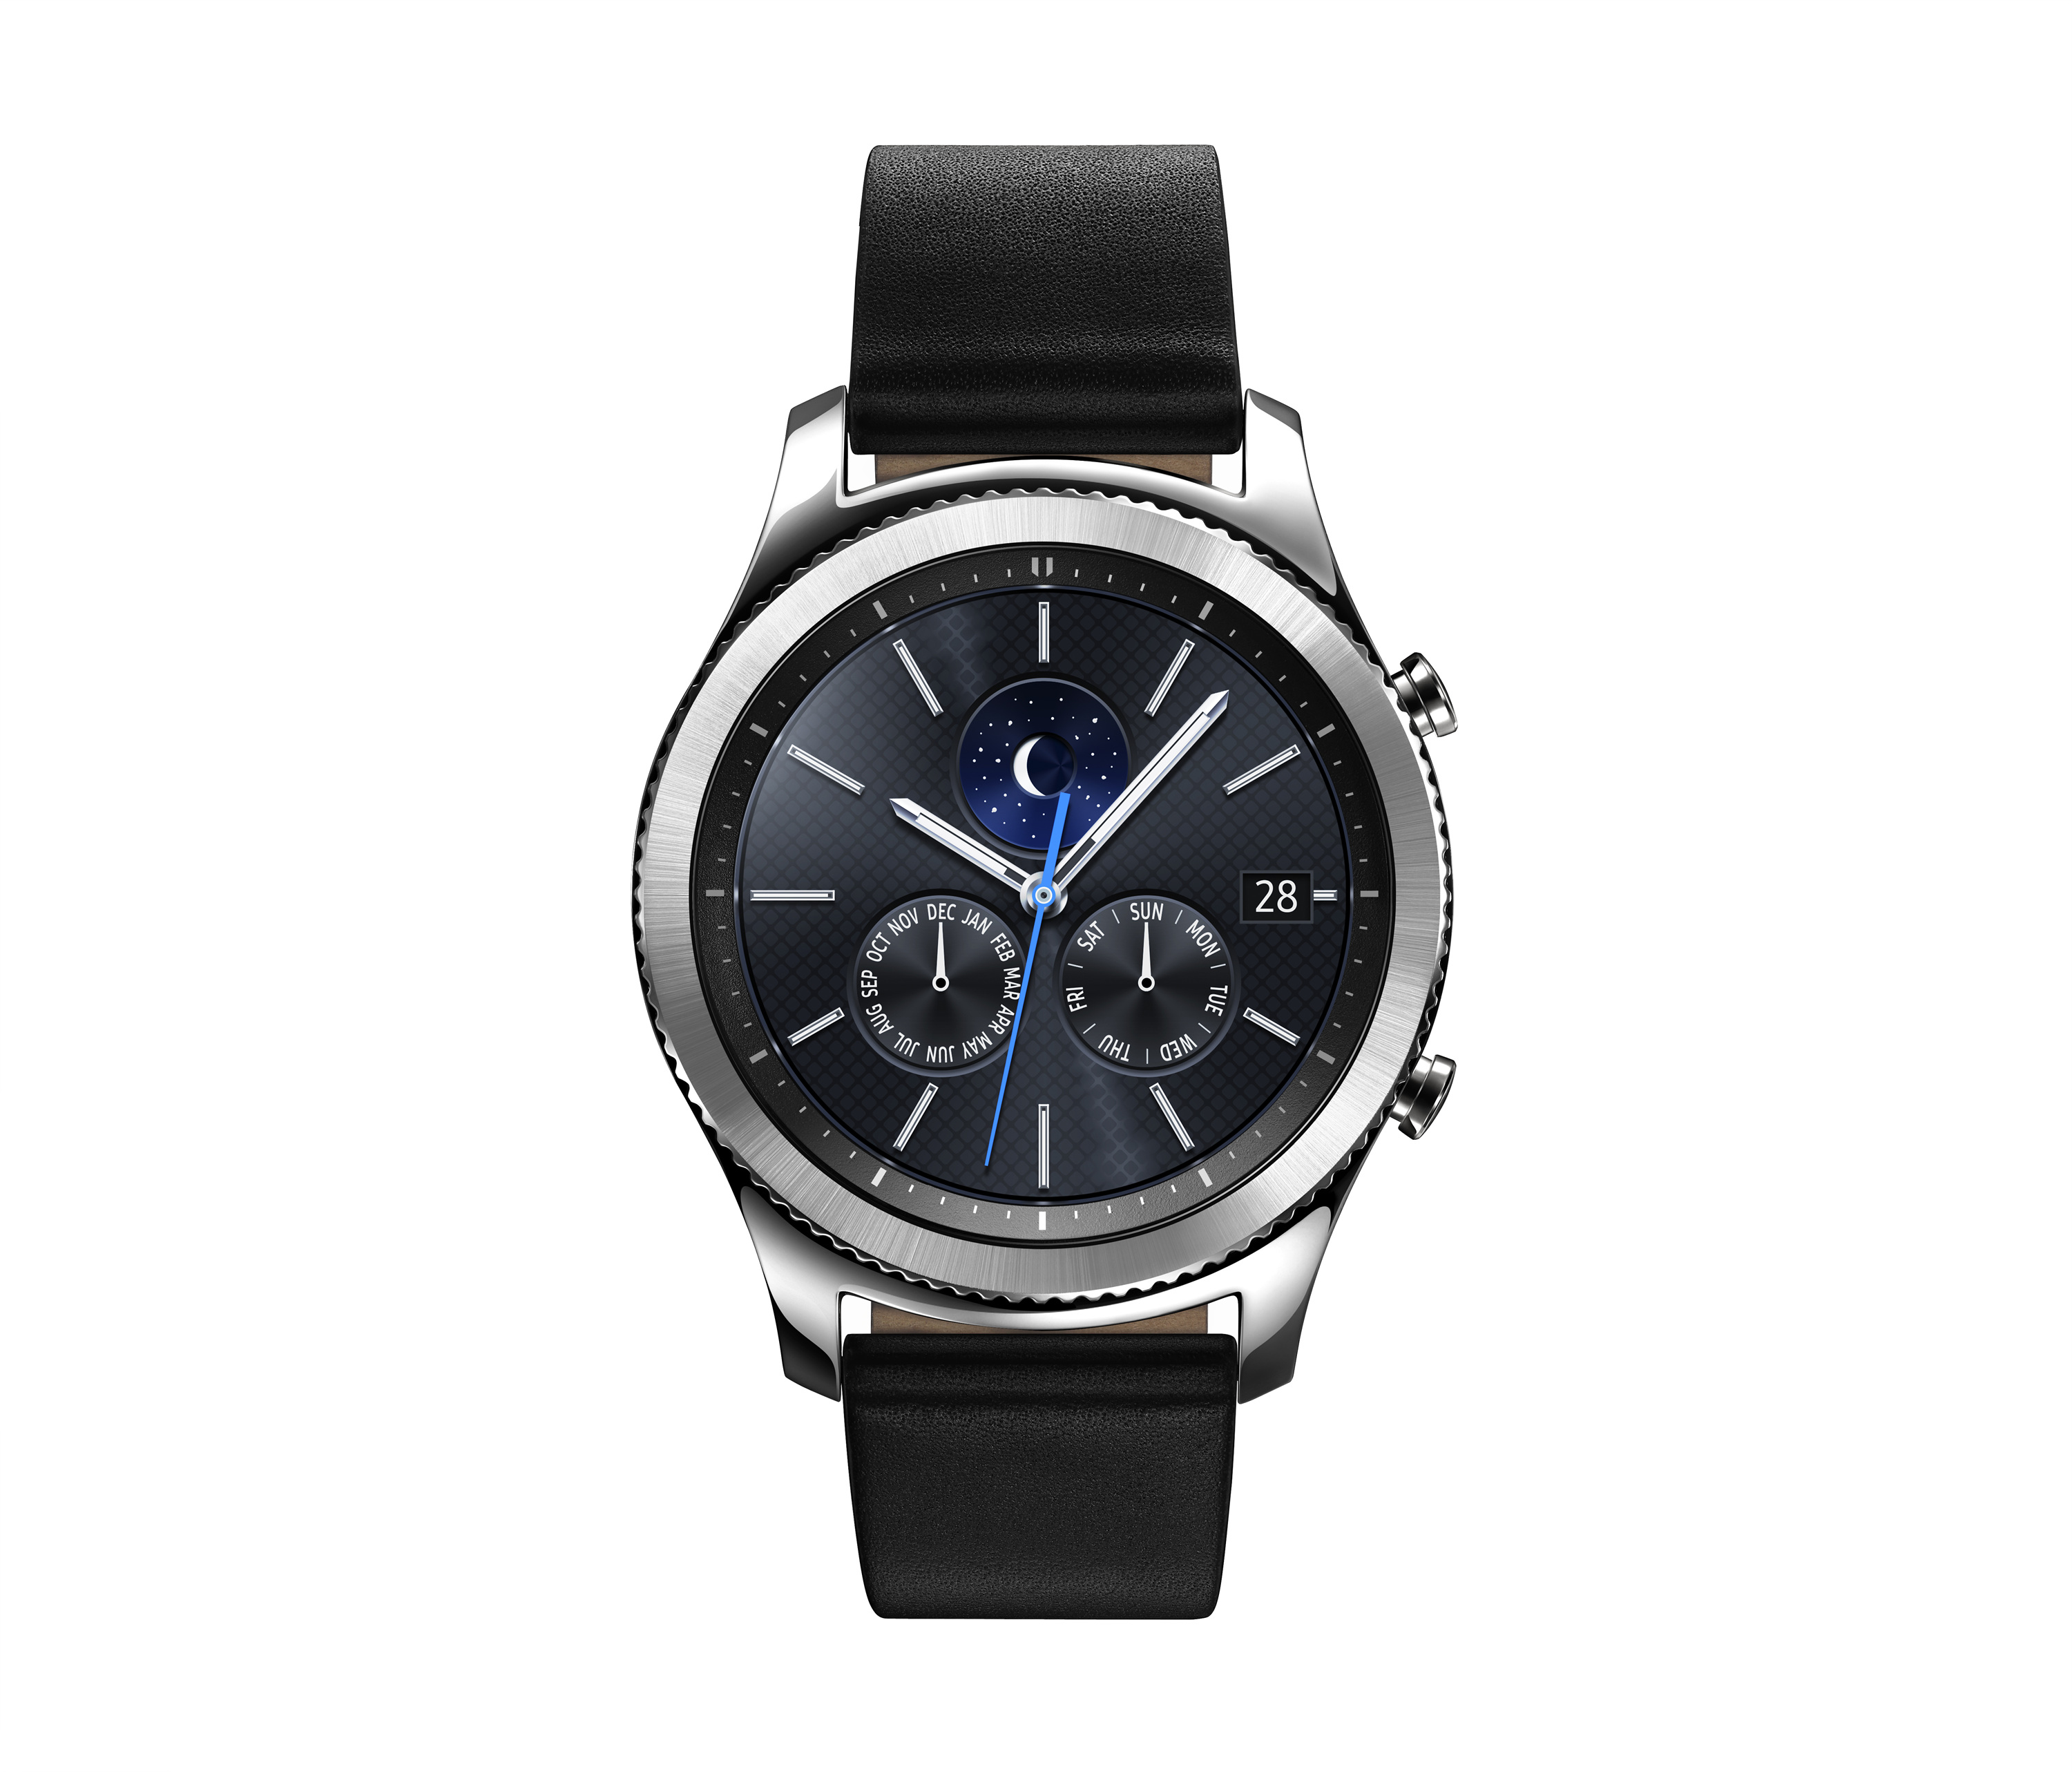 Samsung finally has an LTE model of the Gear S3 Classic